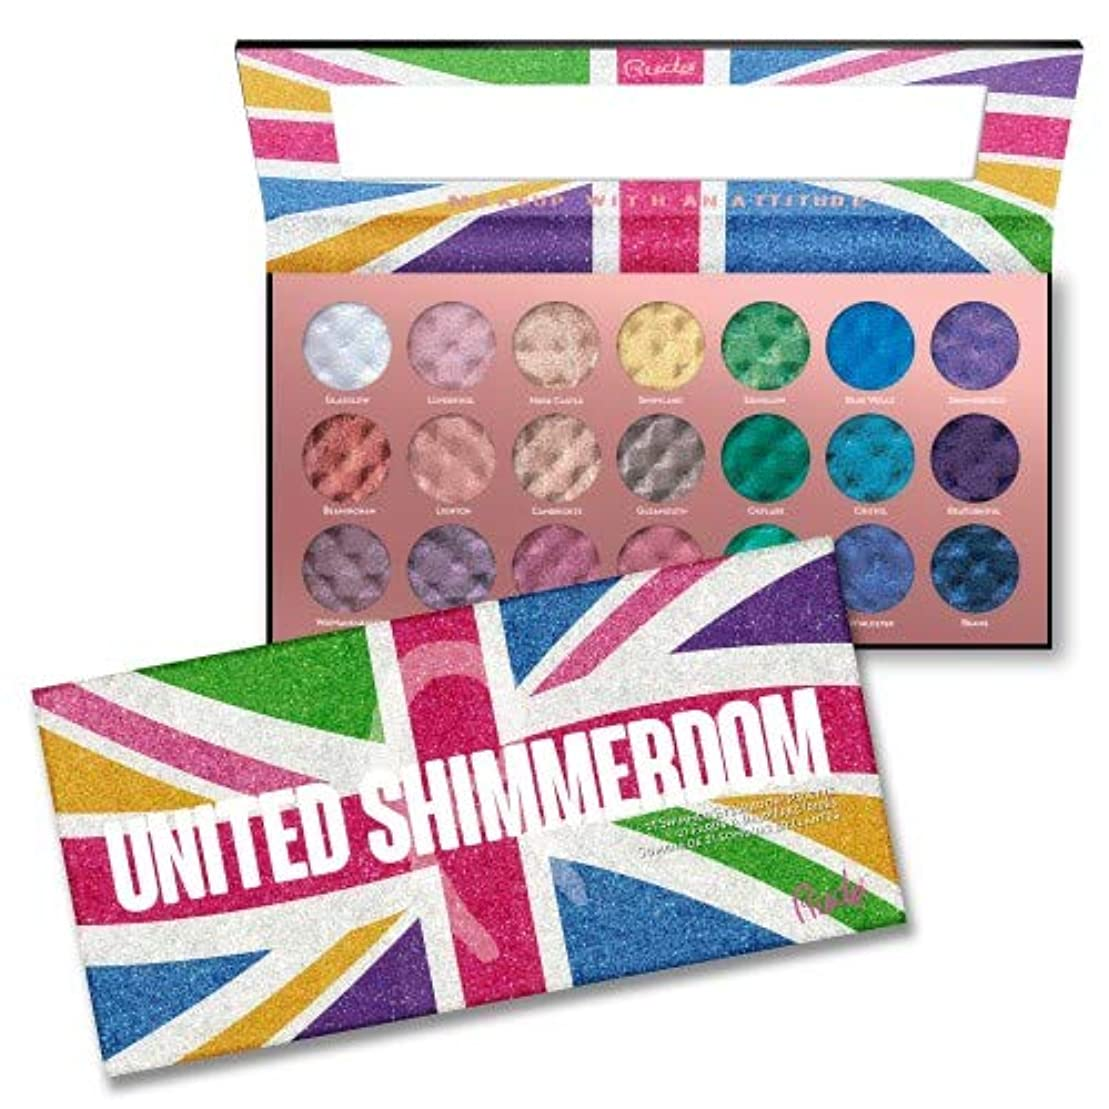 凝視未使用十二(3 Pack) RUDE United Shimmerdom - 21 Shimmer Eyeshadow Palette (並行輸入品)